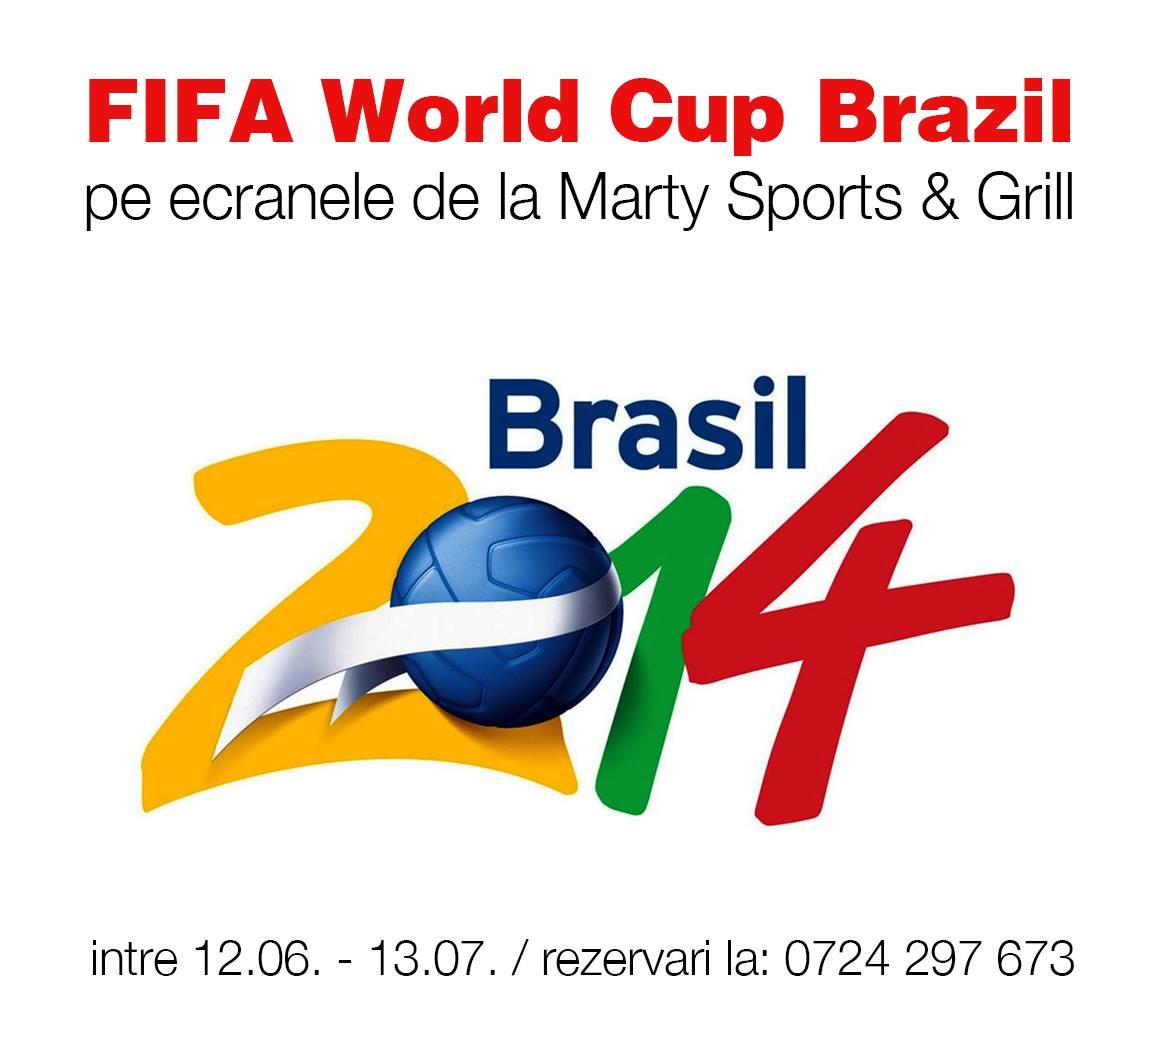 FIFA World Cup @ Marty Sports & Grill